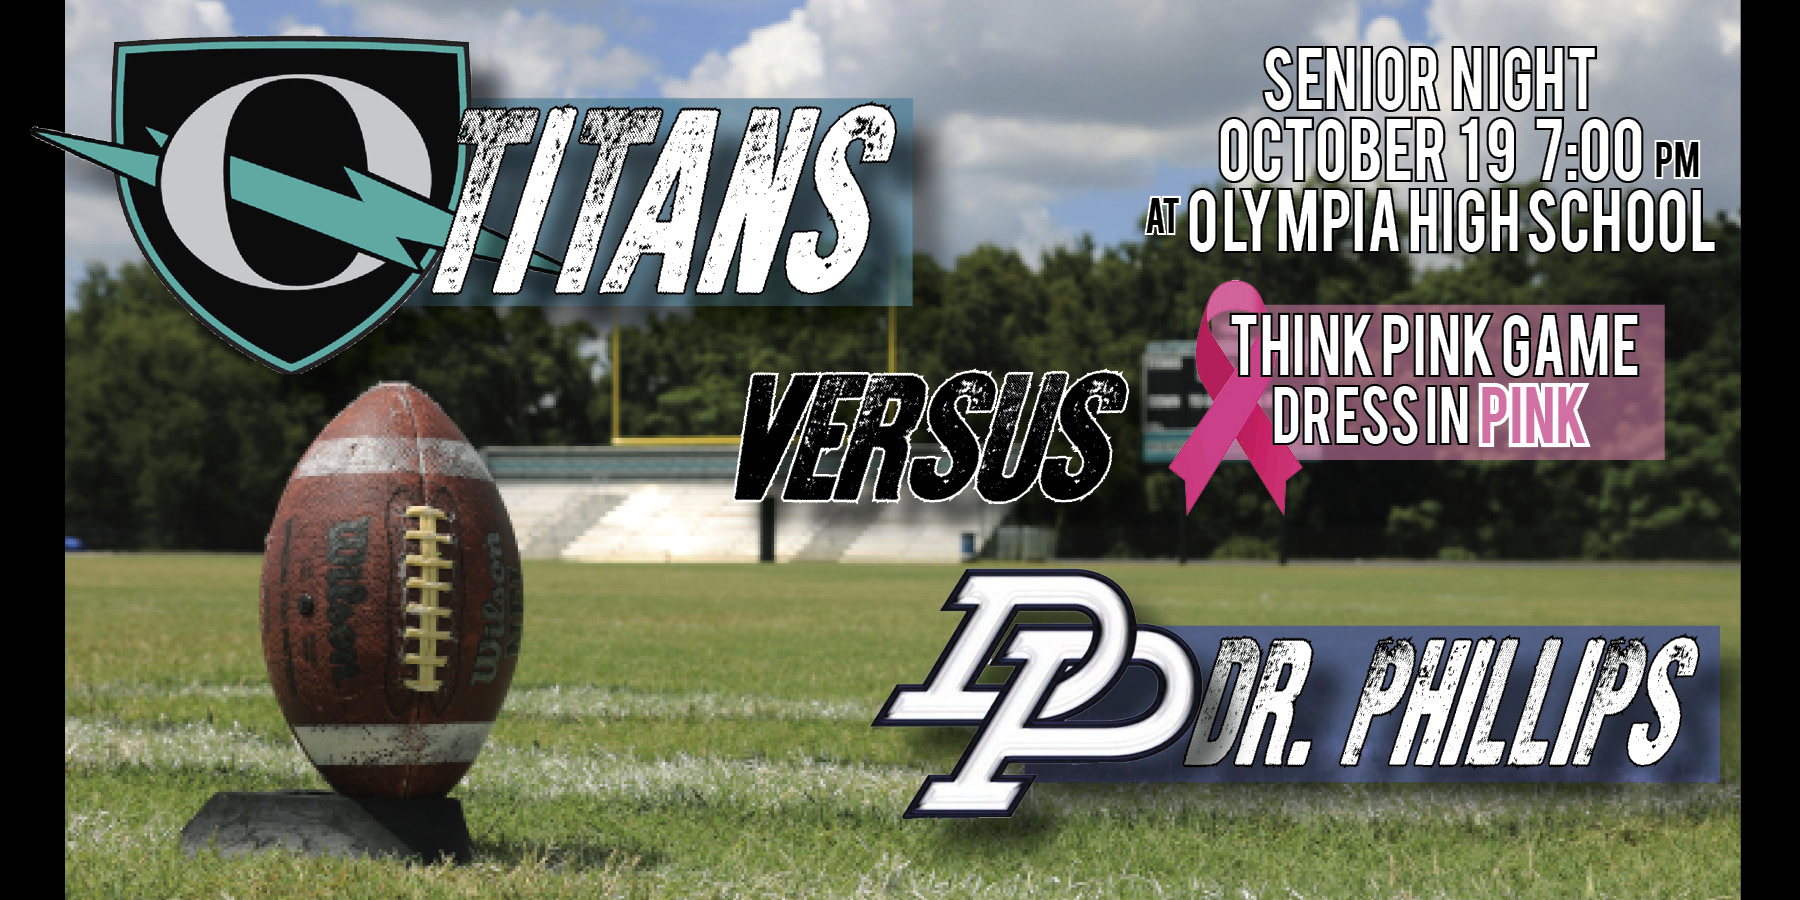 Football Game vs. Dr. Phillips on 10/19 at 7pm- Senior Night and Think Pink